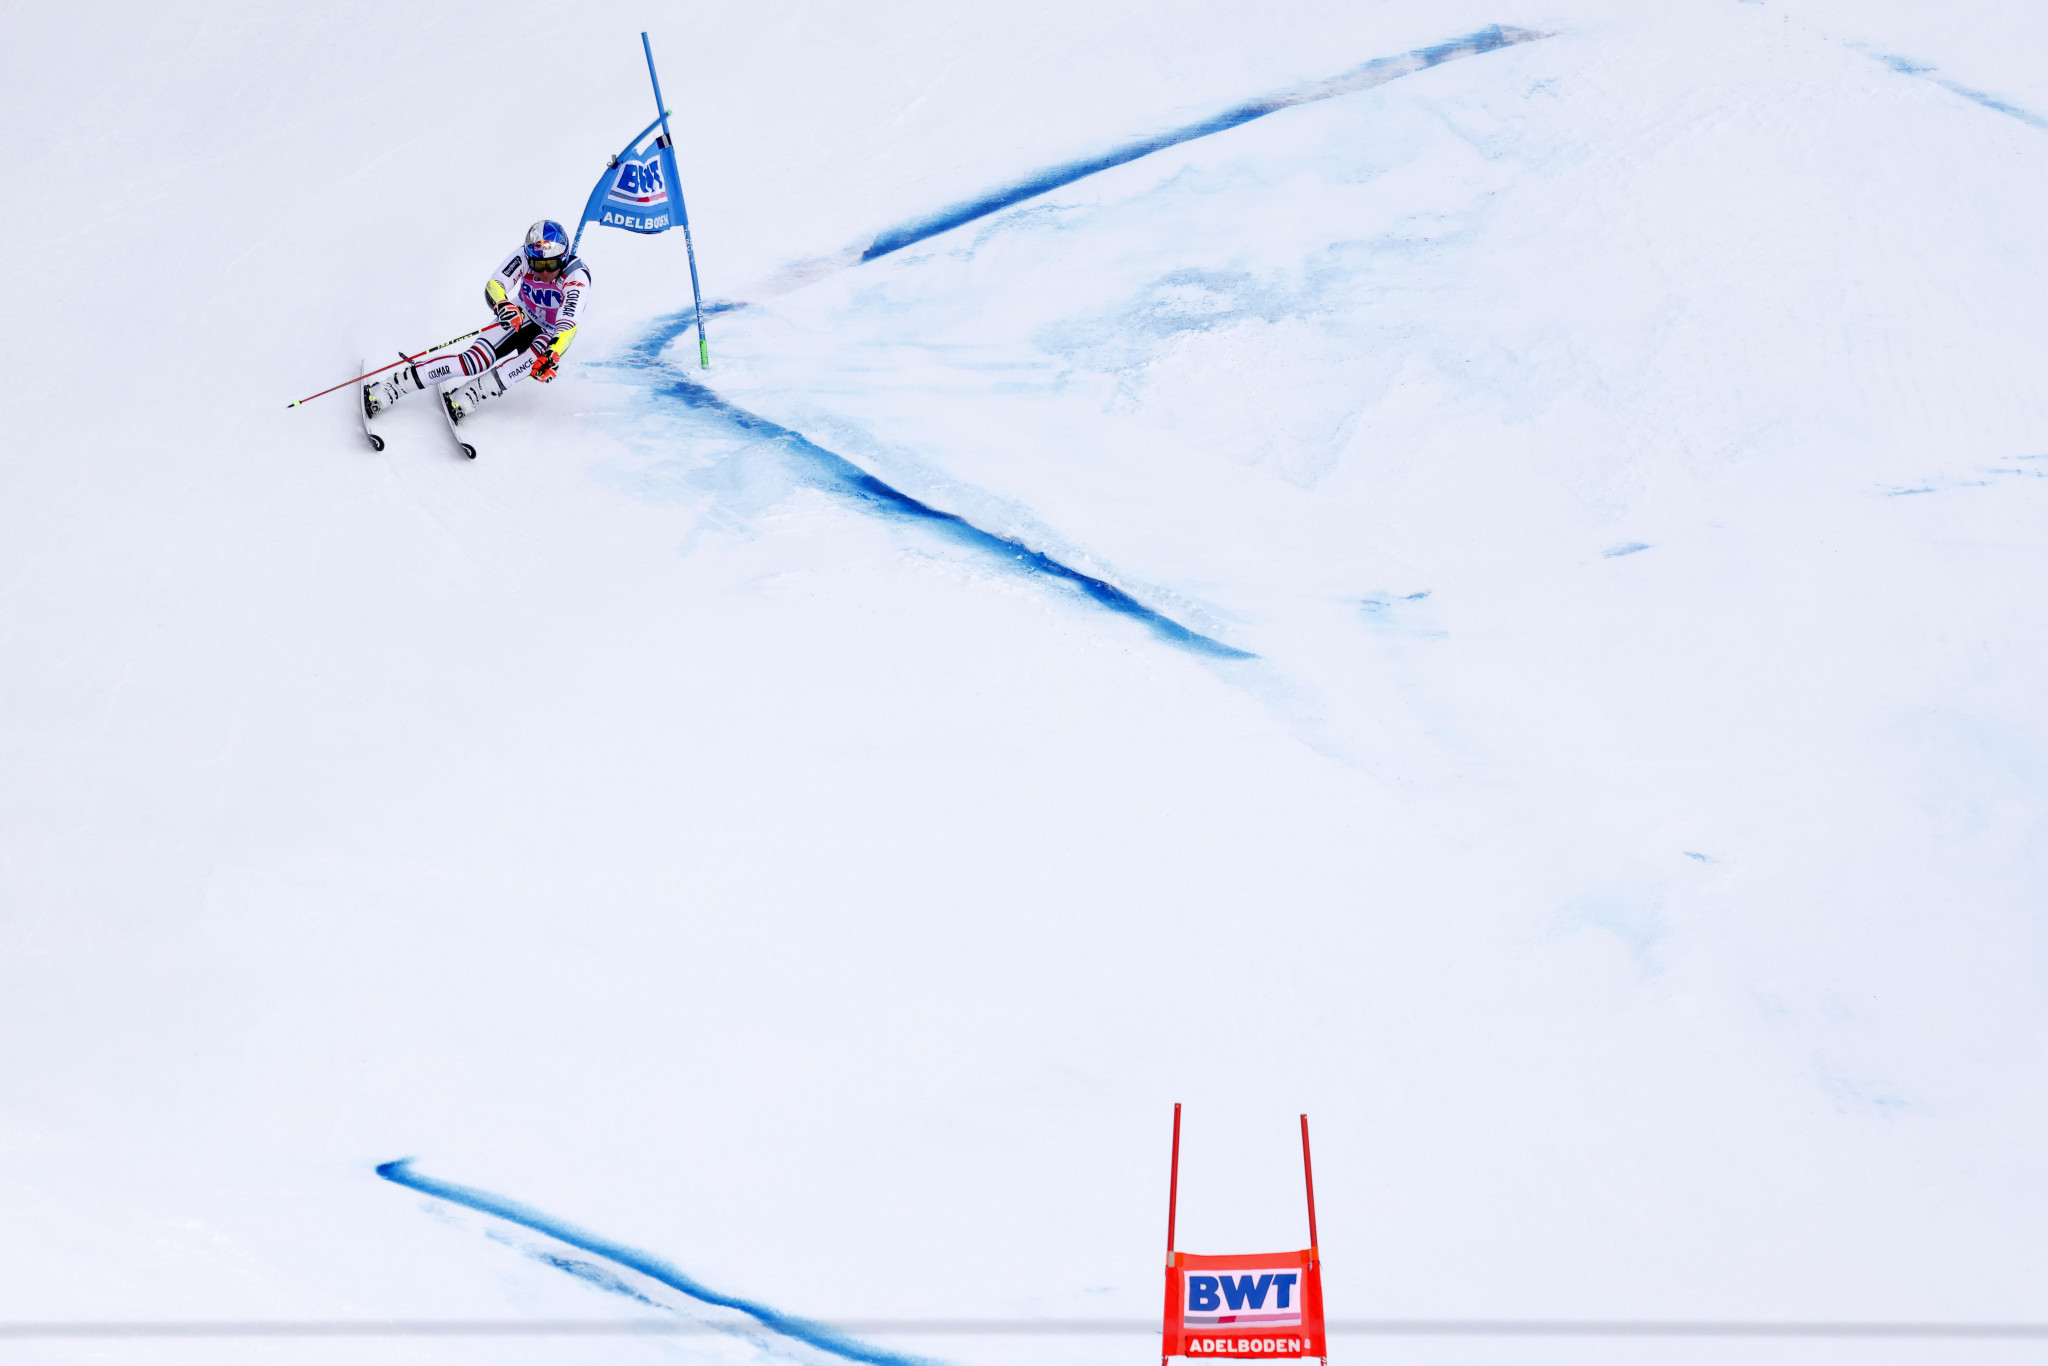 Pinturault triumphs again in Adelboden as Ford hospitalised following crash